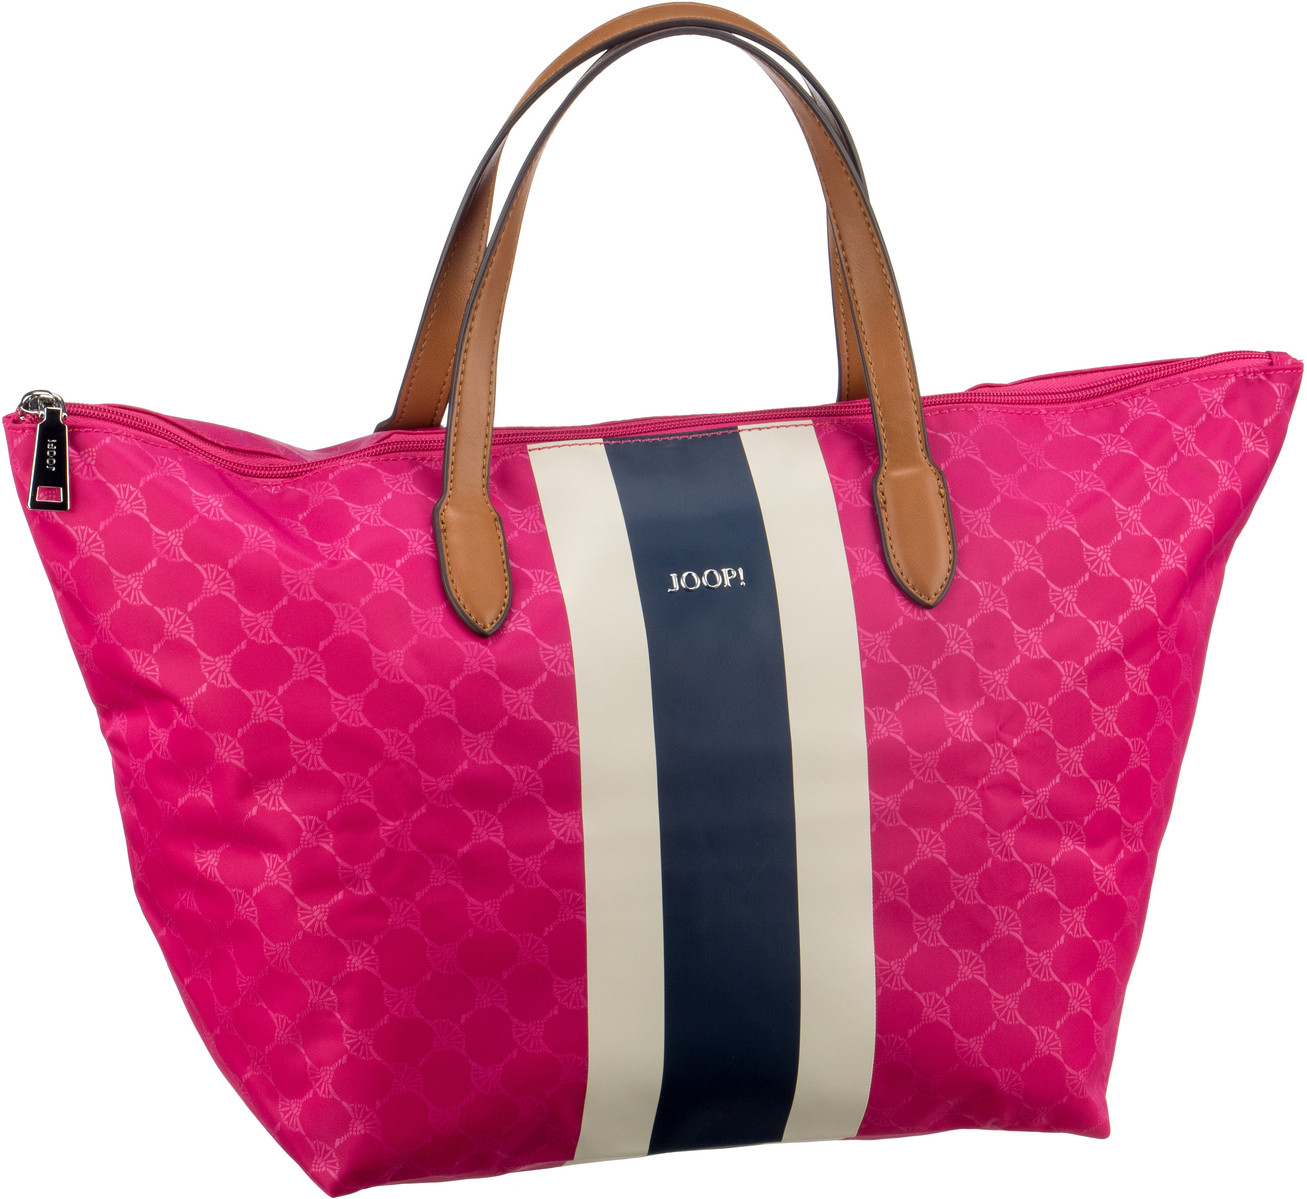 Shopper Piccolina Due Helena HandBag LHZ Fuchsia